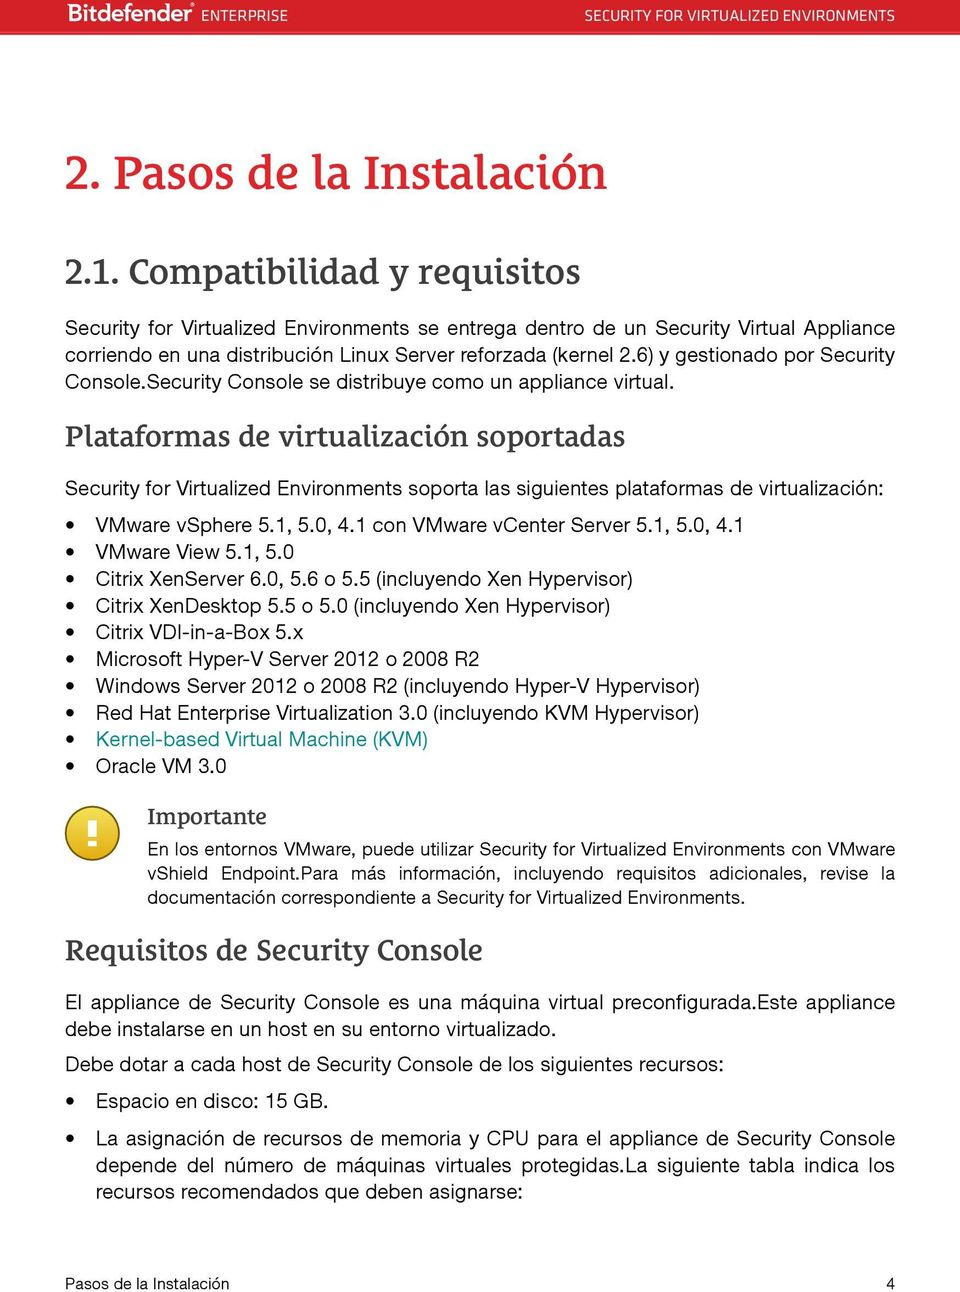 6) y gestionado por Security Console.Security Console se distribuye como un appliance virtual.